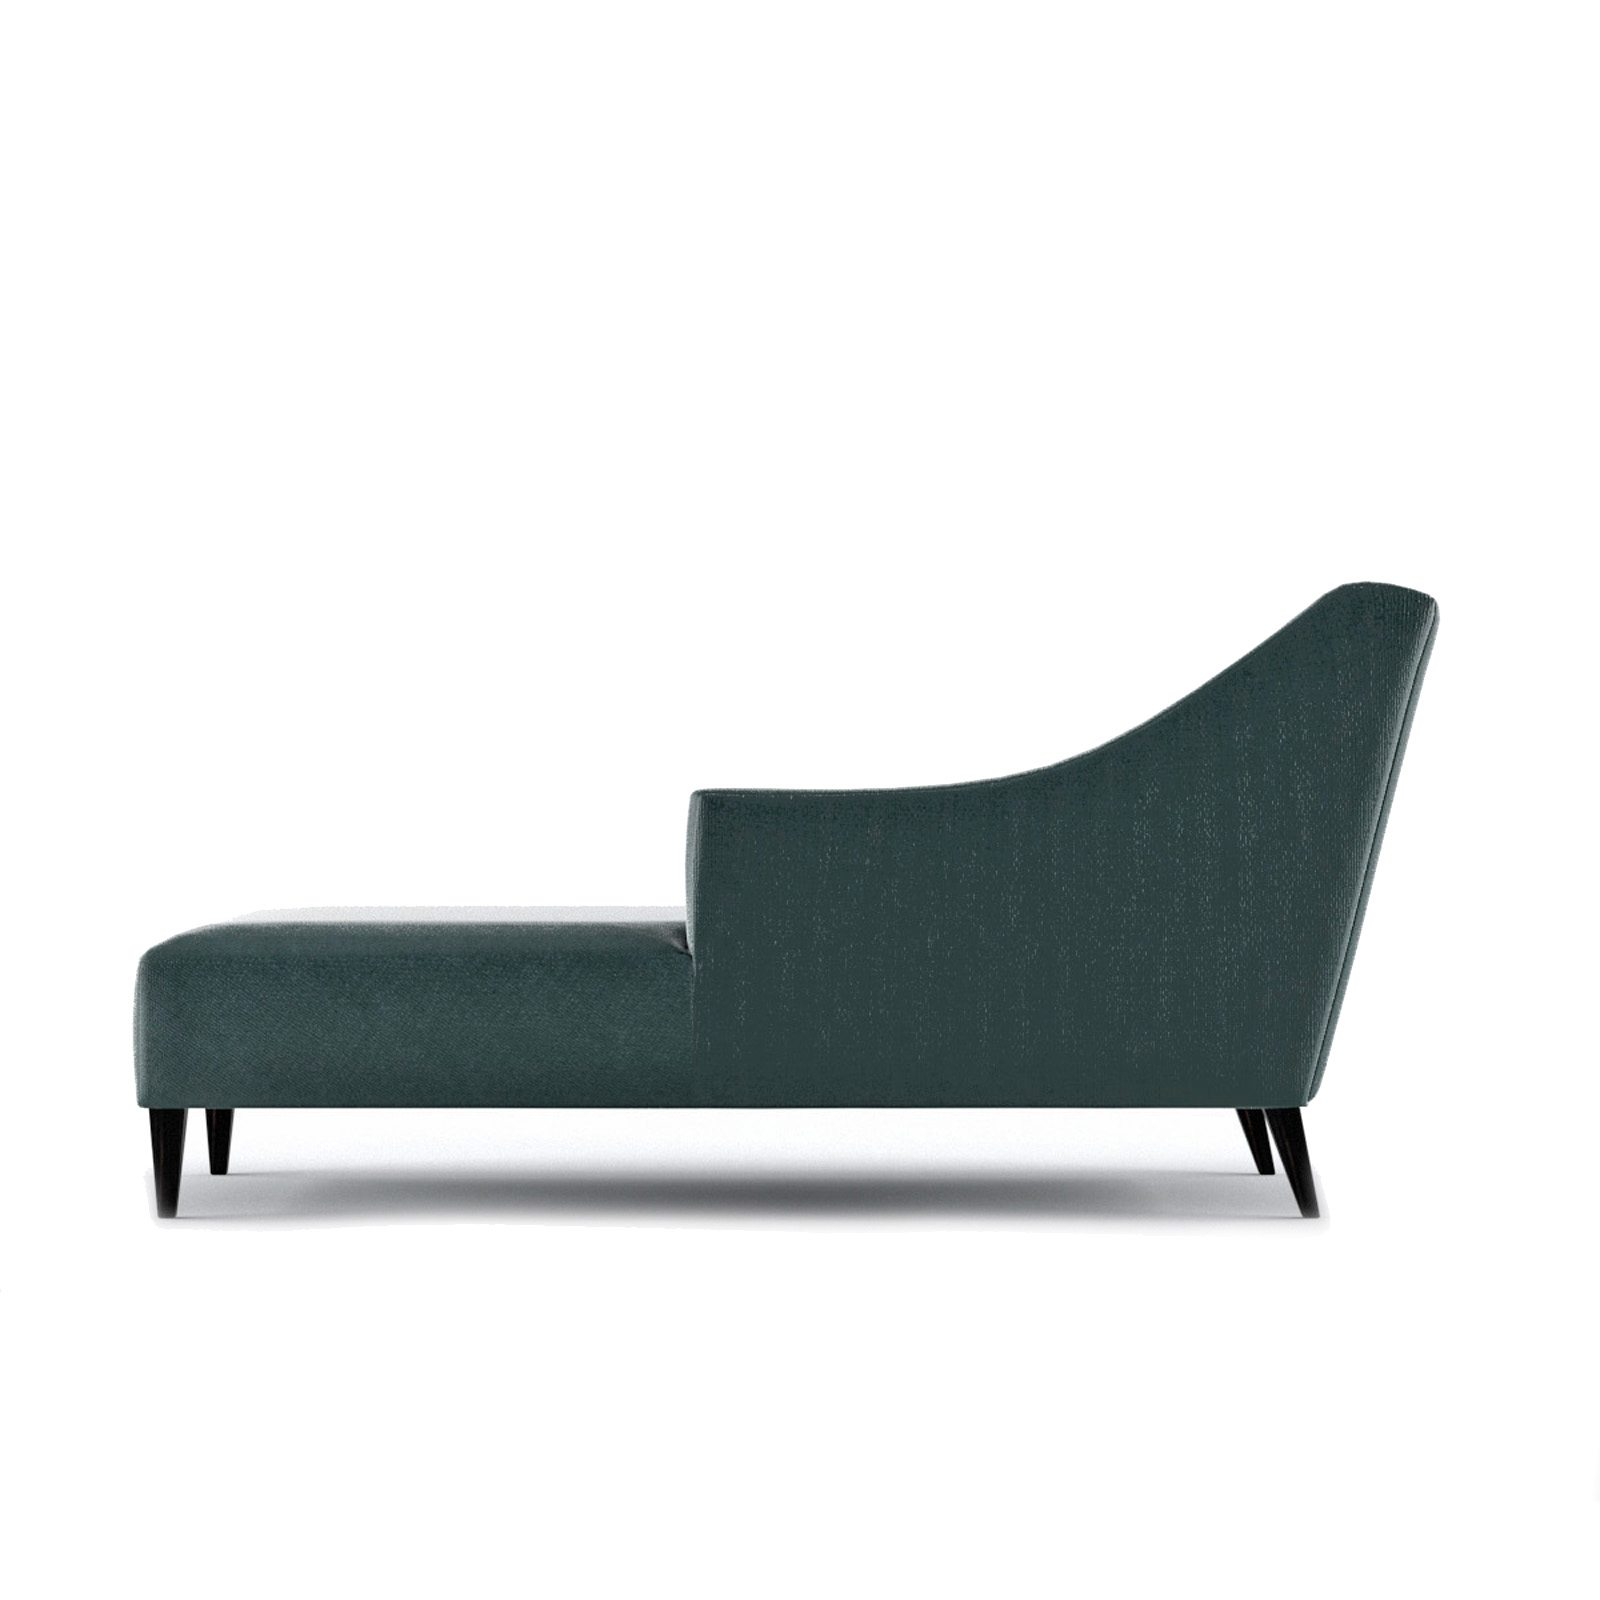 bonham bonham victoria chaise longue chaise longues with. Black Bedroom Furniture Sets. Home Design Ideas